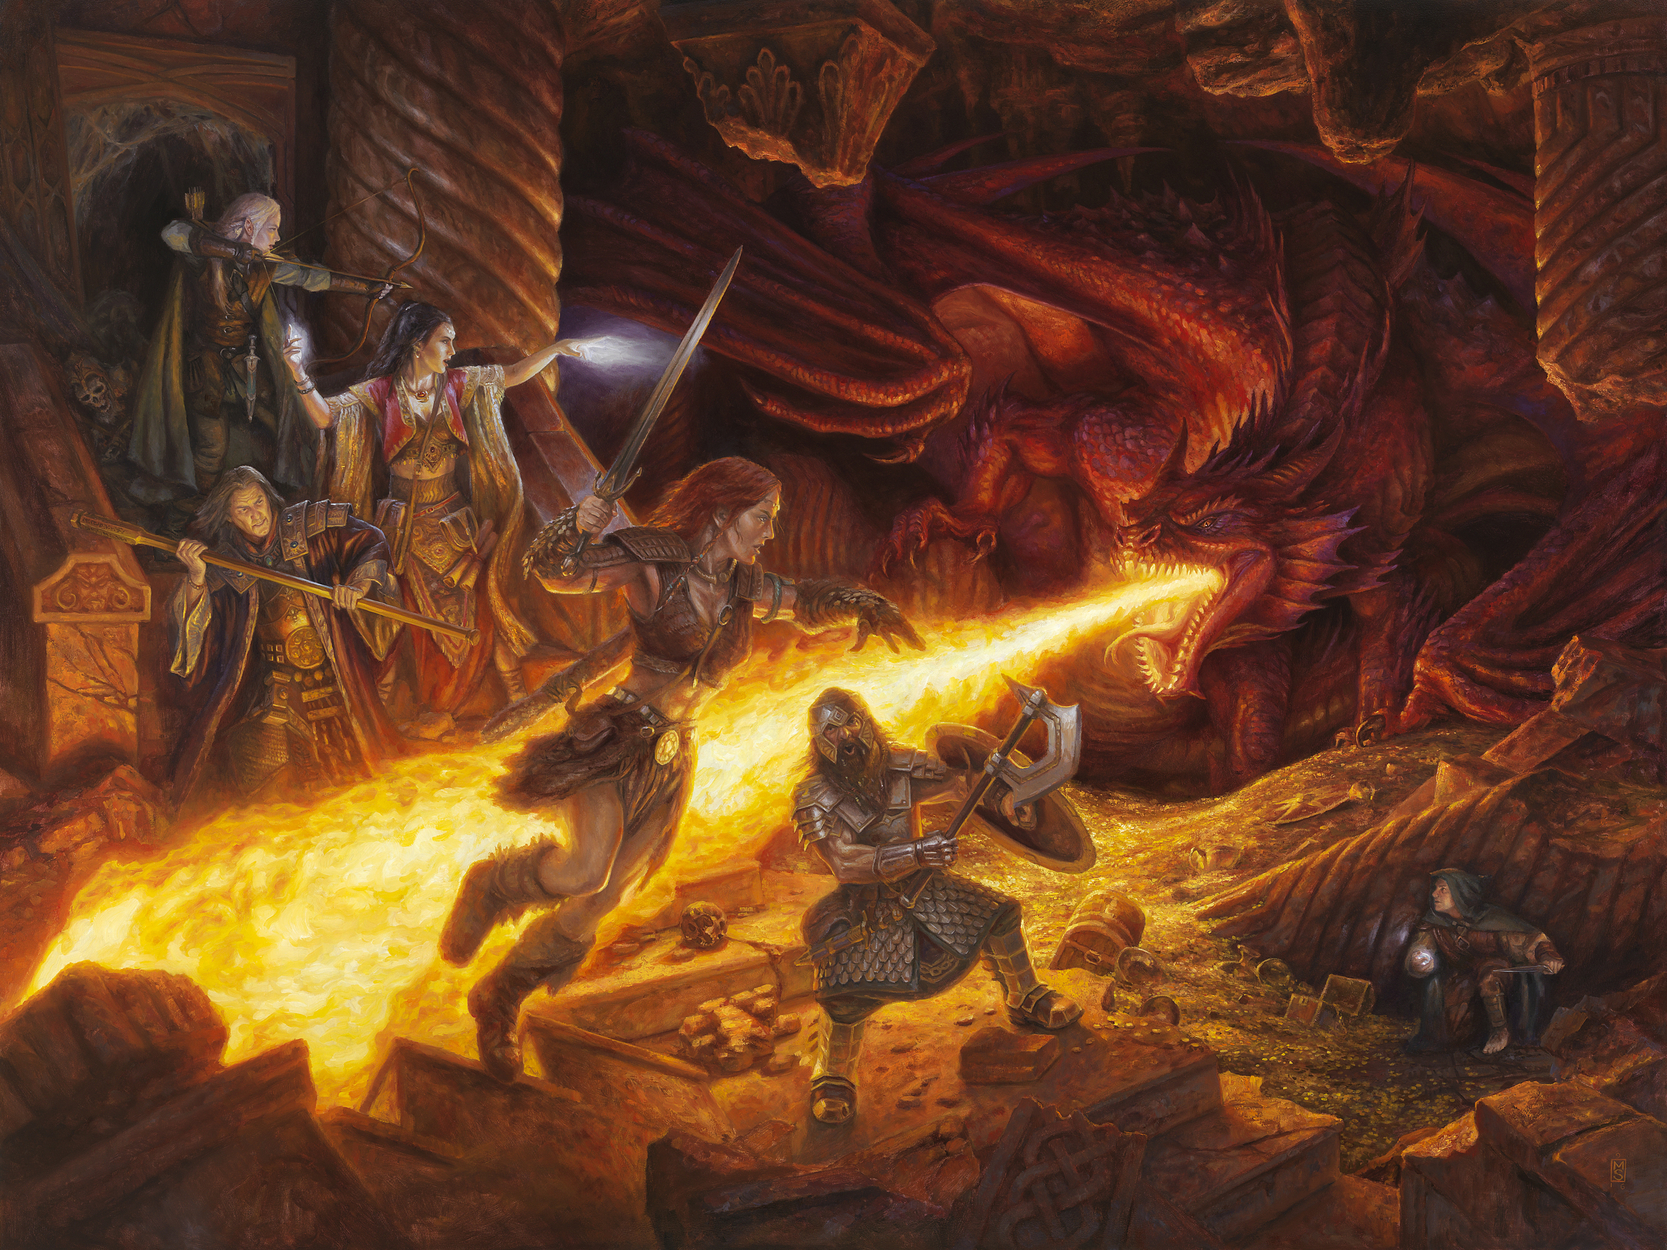 In the Lair of the Red Dragon Artwork by Matthew Stewart